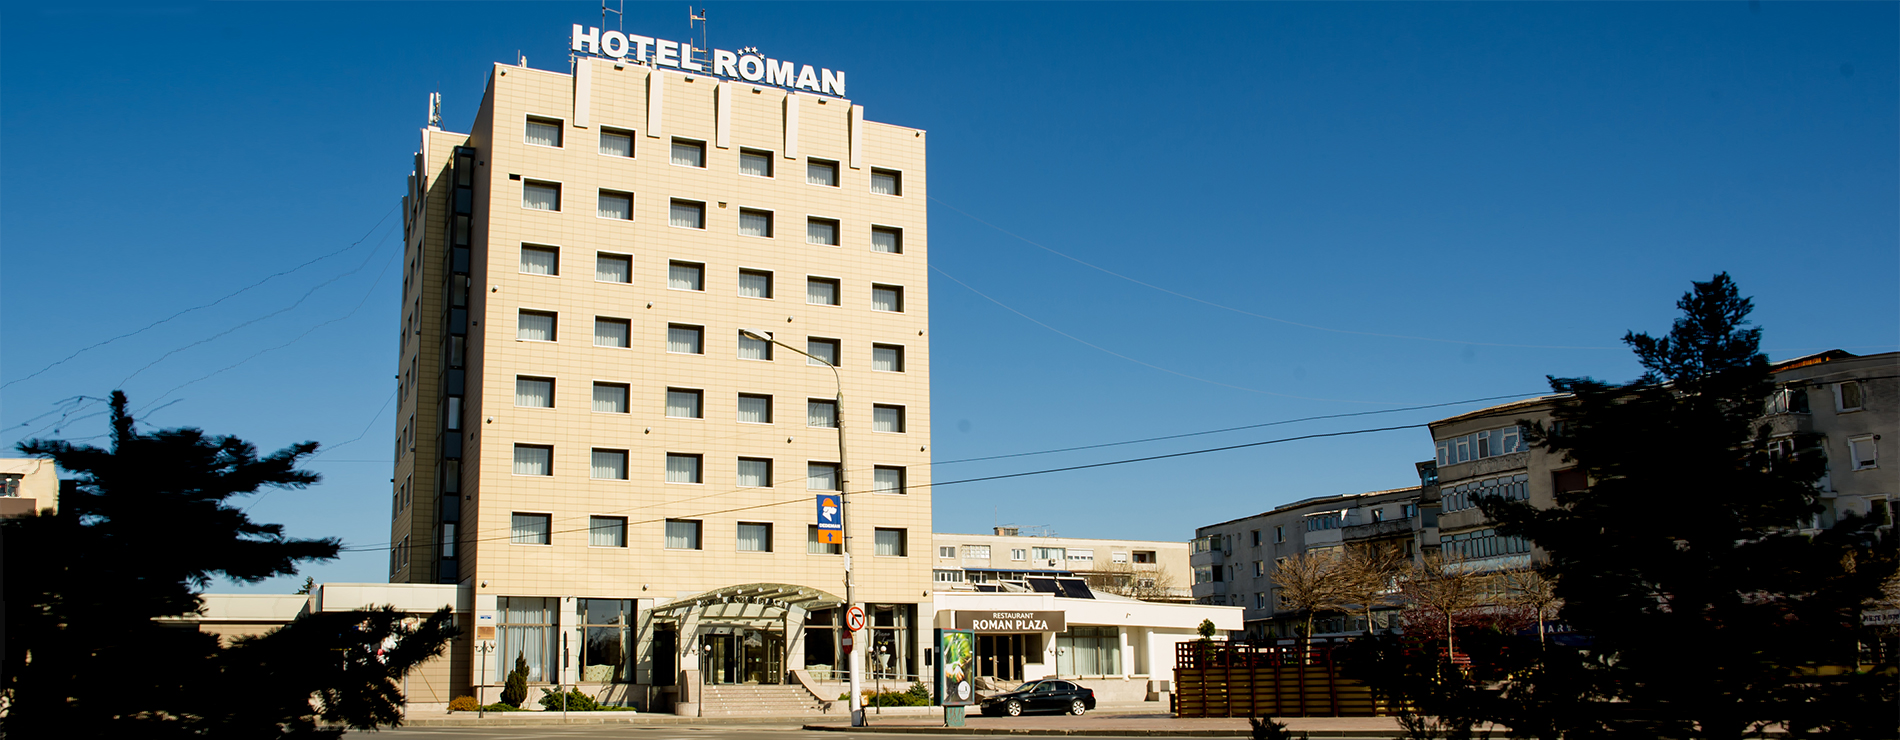 Hotel Roman are un nou proprietar